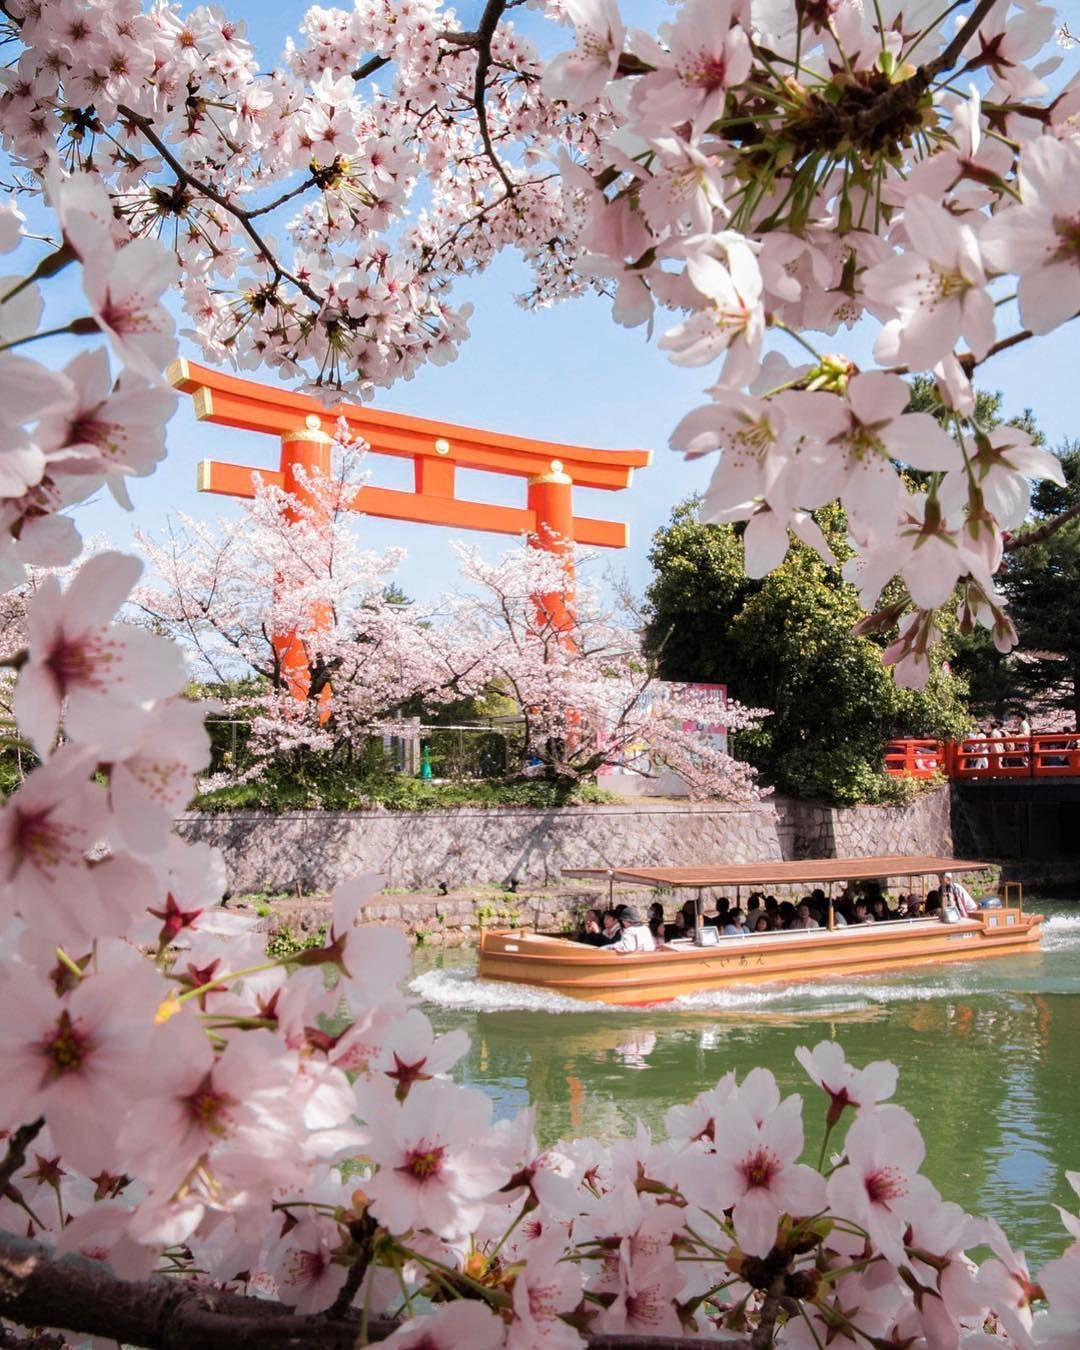 We All Know That Cherry Blossoms Are One Of The Most Famous Natural Symbols Of Japan Tell Us What Make Cherry Blossom Japan Japan Sakura Japan Photography